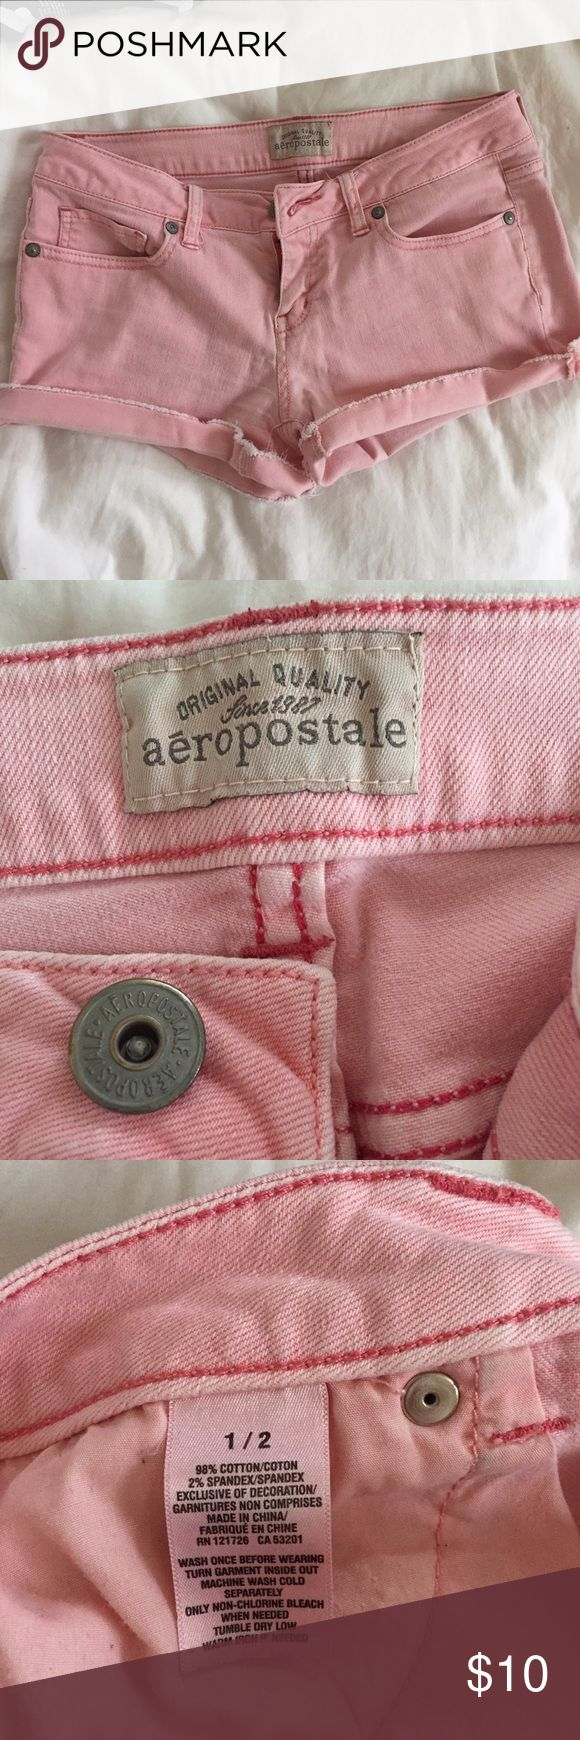 Aeropostale Light Pink Shorts Size 1/2 Adorable Aeropostale pink shorts that were previously loved but they don't fit me well anymore. SIZE 1/2 Aeropostale Shorts